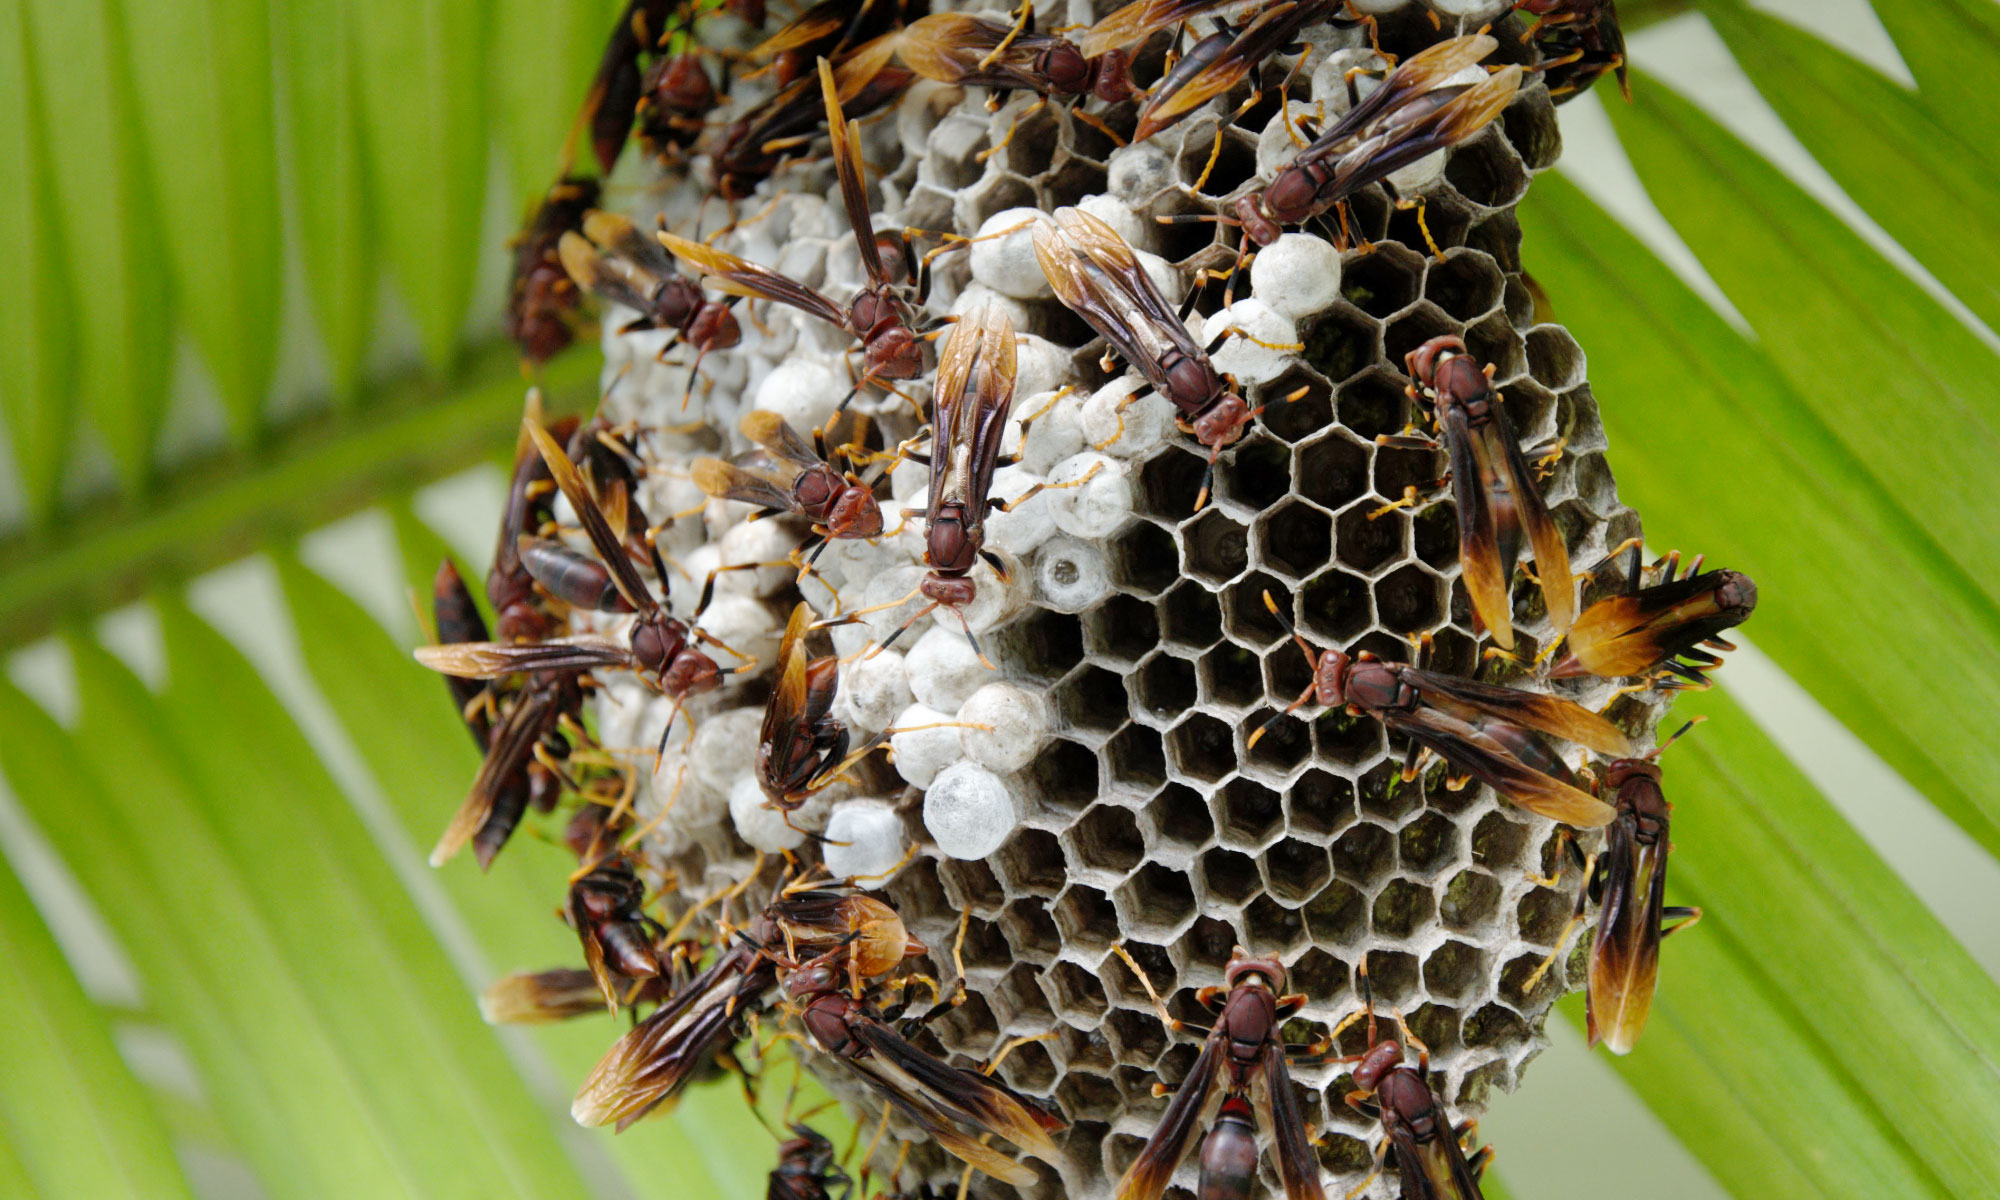 Wasps nesting on a palm frond